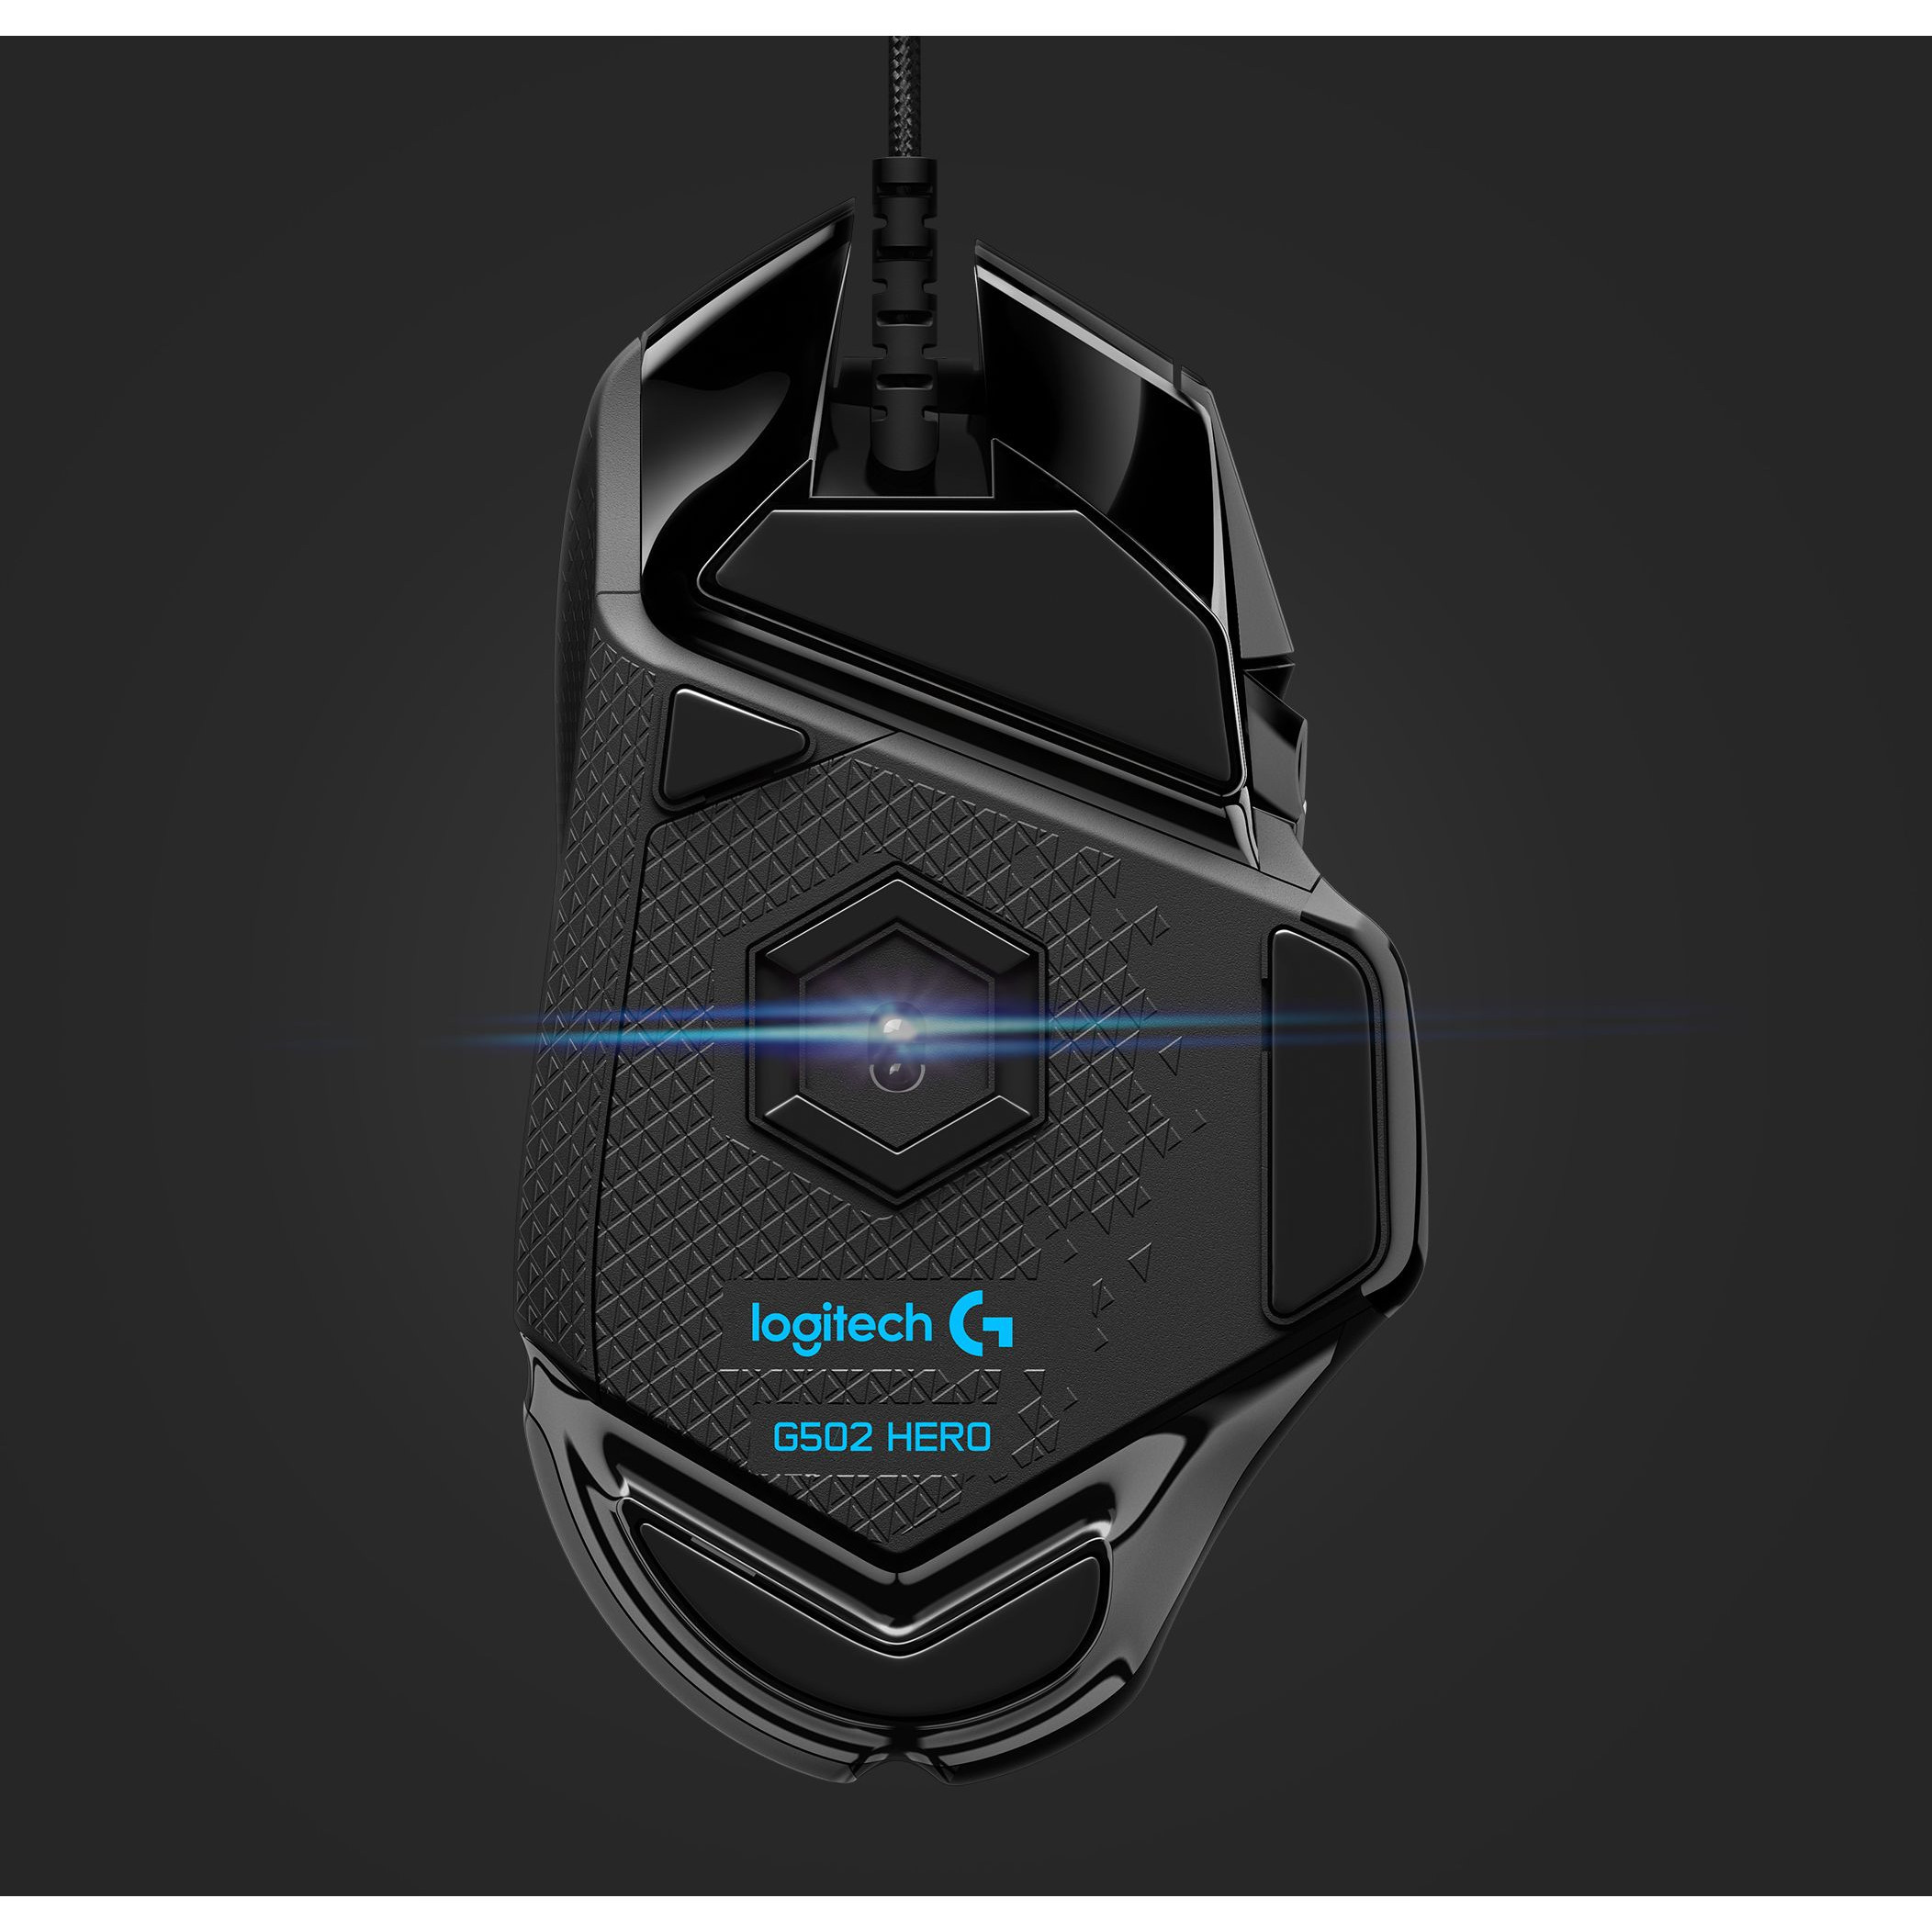 6e9599453a0 Logitech G502 HERO High Performance Gaming Mouse - 910-005469